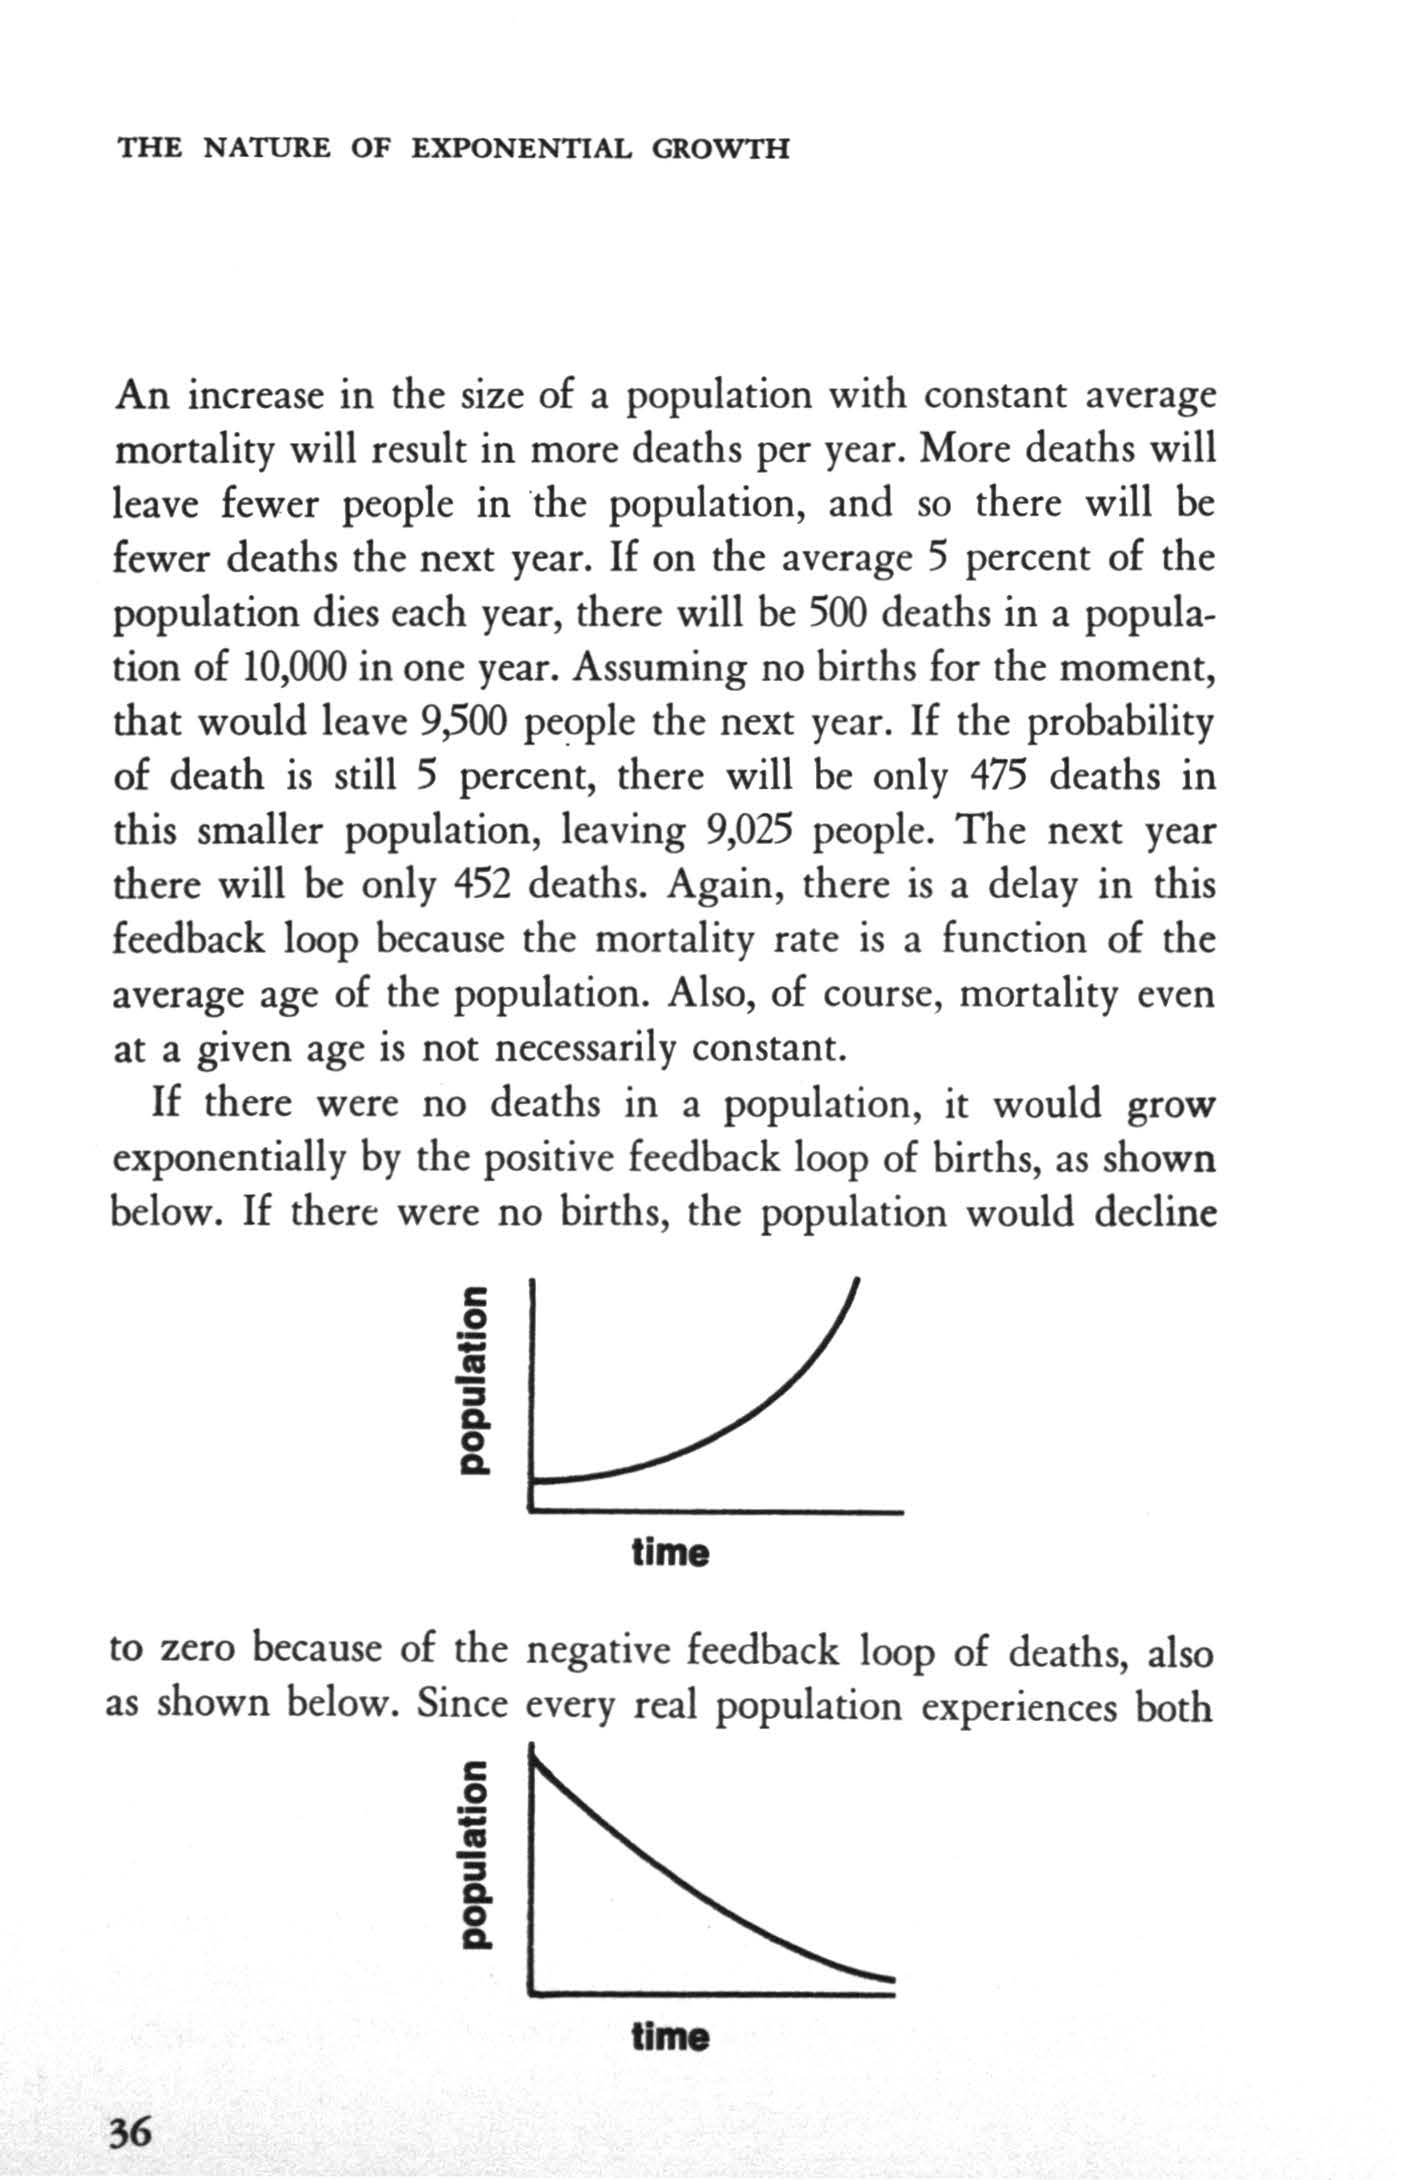 THE NATURE OF EXPONENTAL GROWTH An increase in the size of a population with constant average mortality will result in more deaths per year.